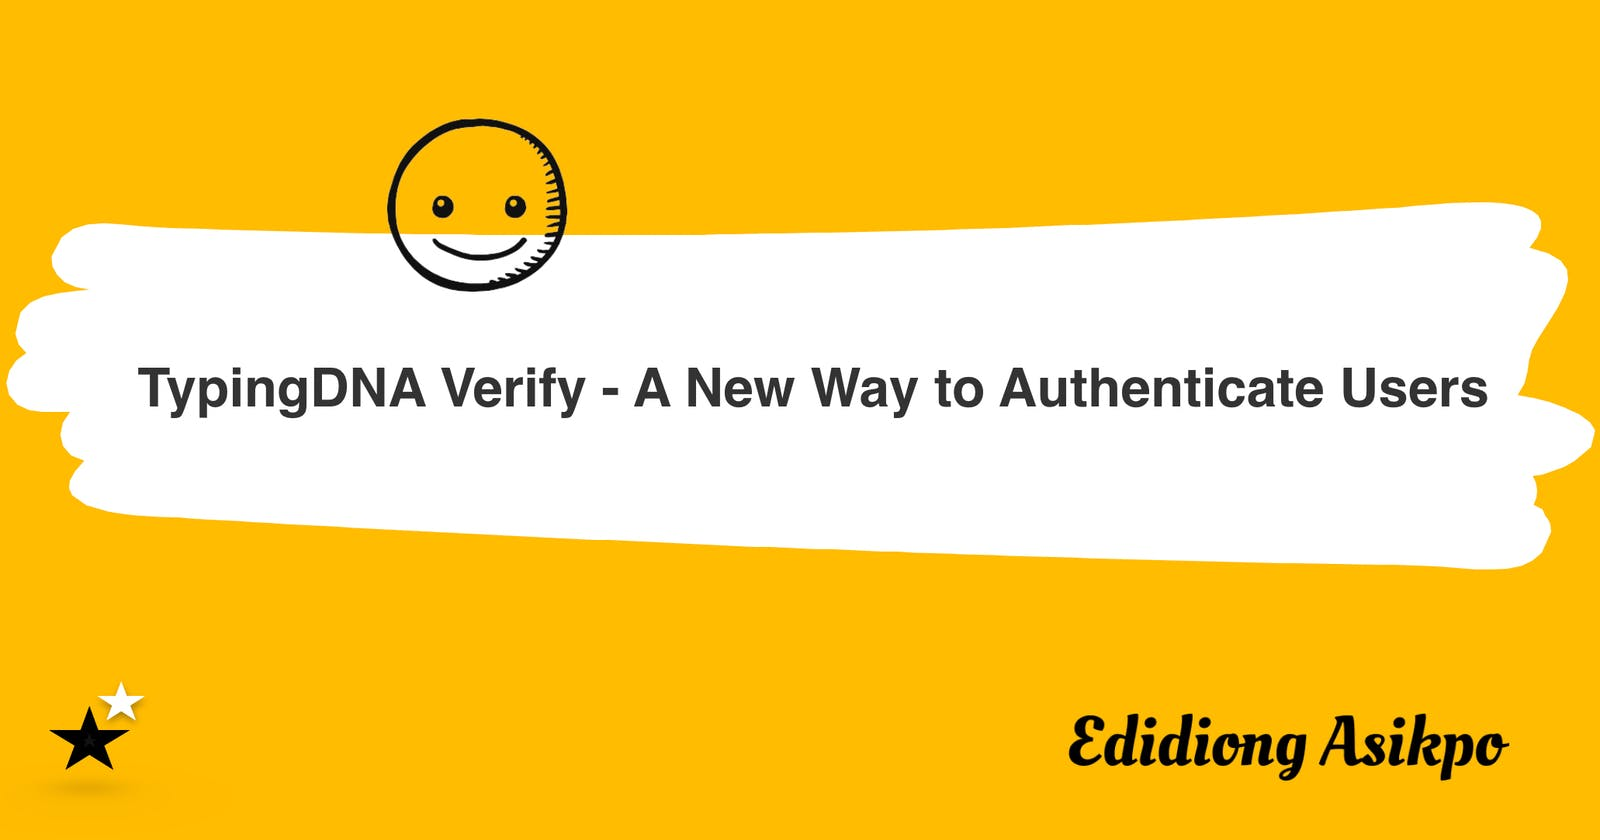 TypingDNA Verify - A New Way to Authenticate Users